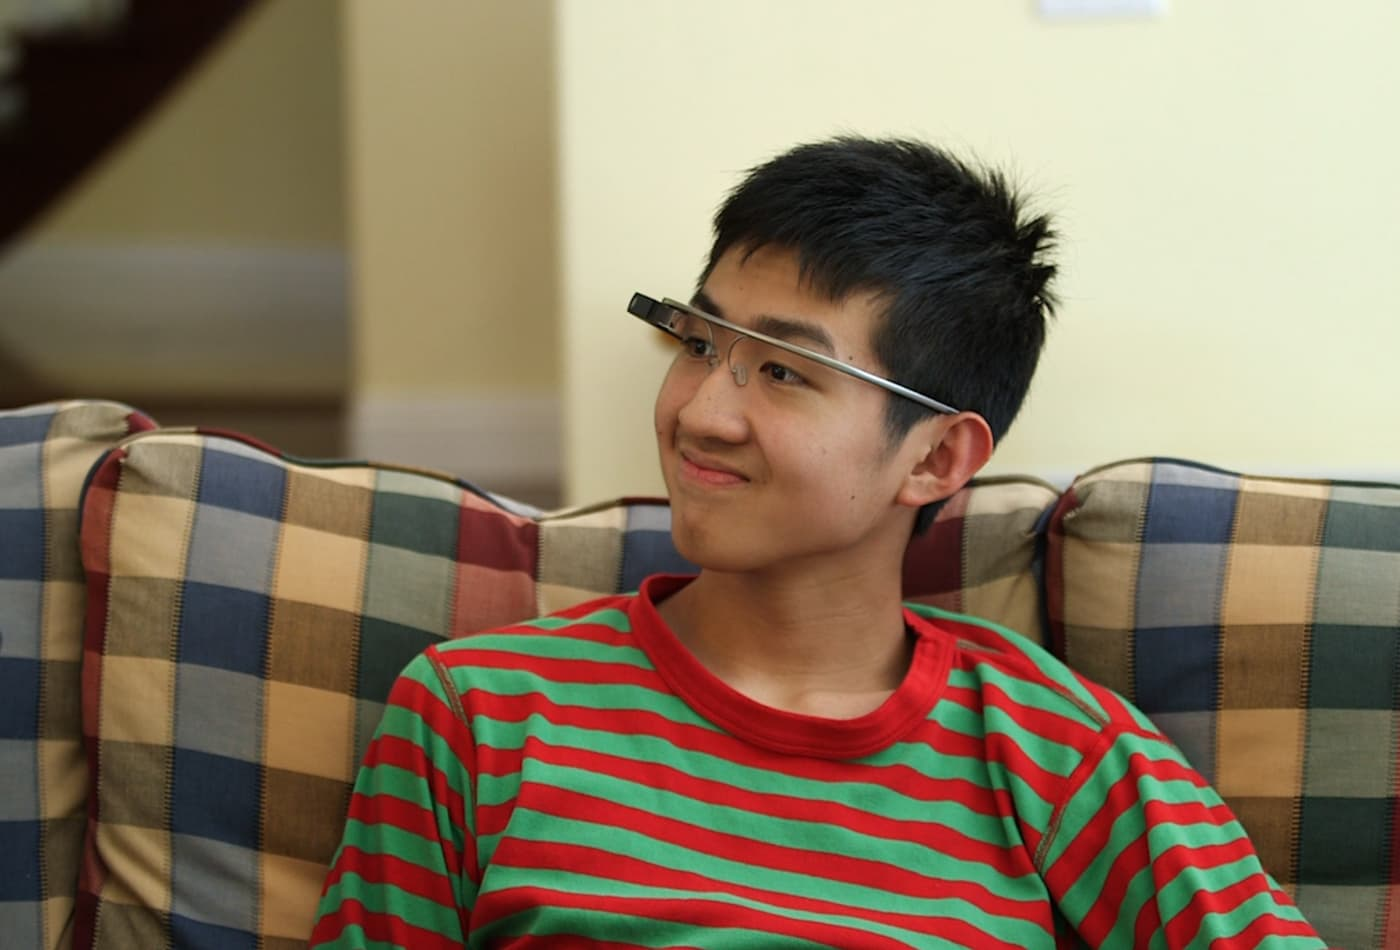 A new use for Google Glass: Helping children with autism